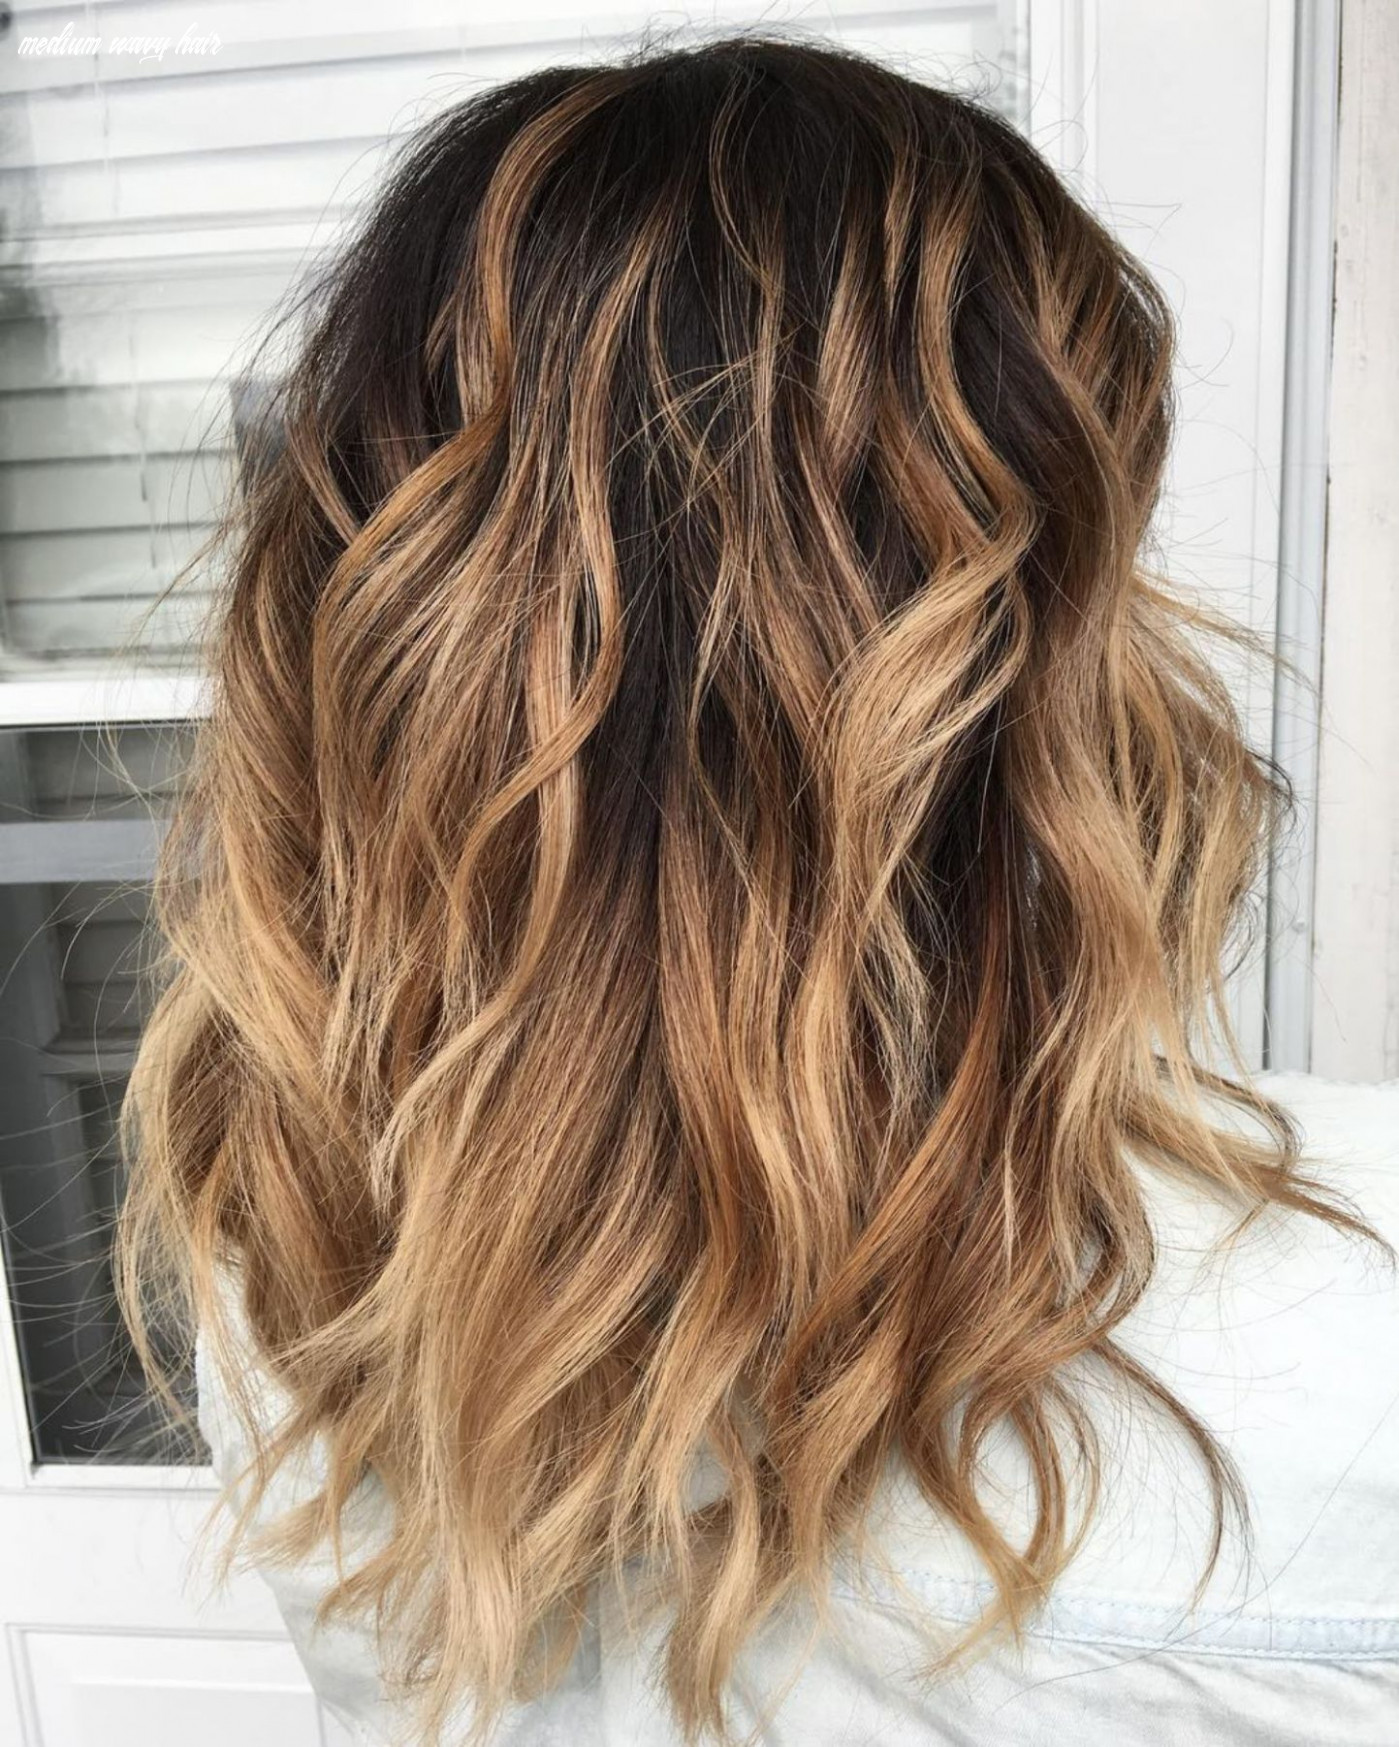 12 most magnetizing hairstyles for thick wavy hair | wavy haircuts